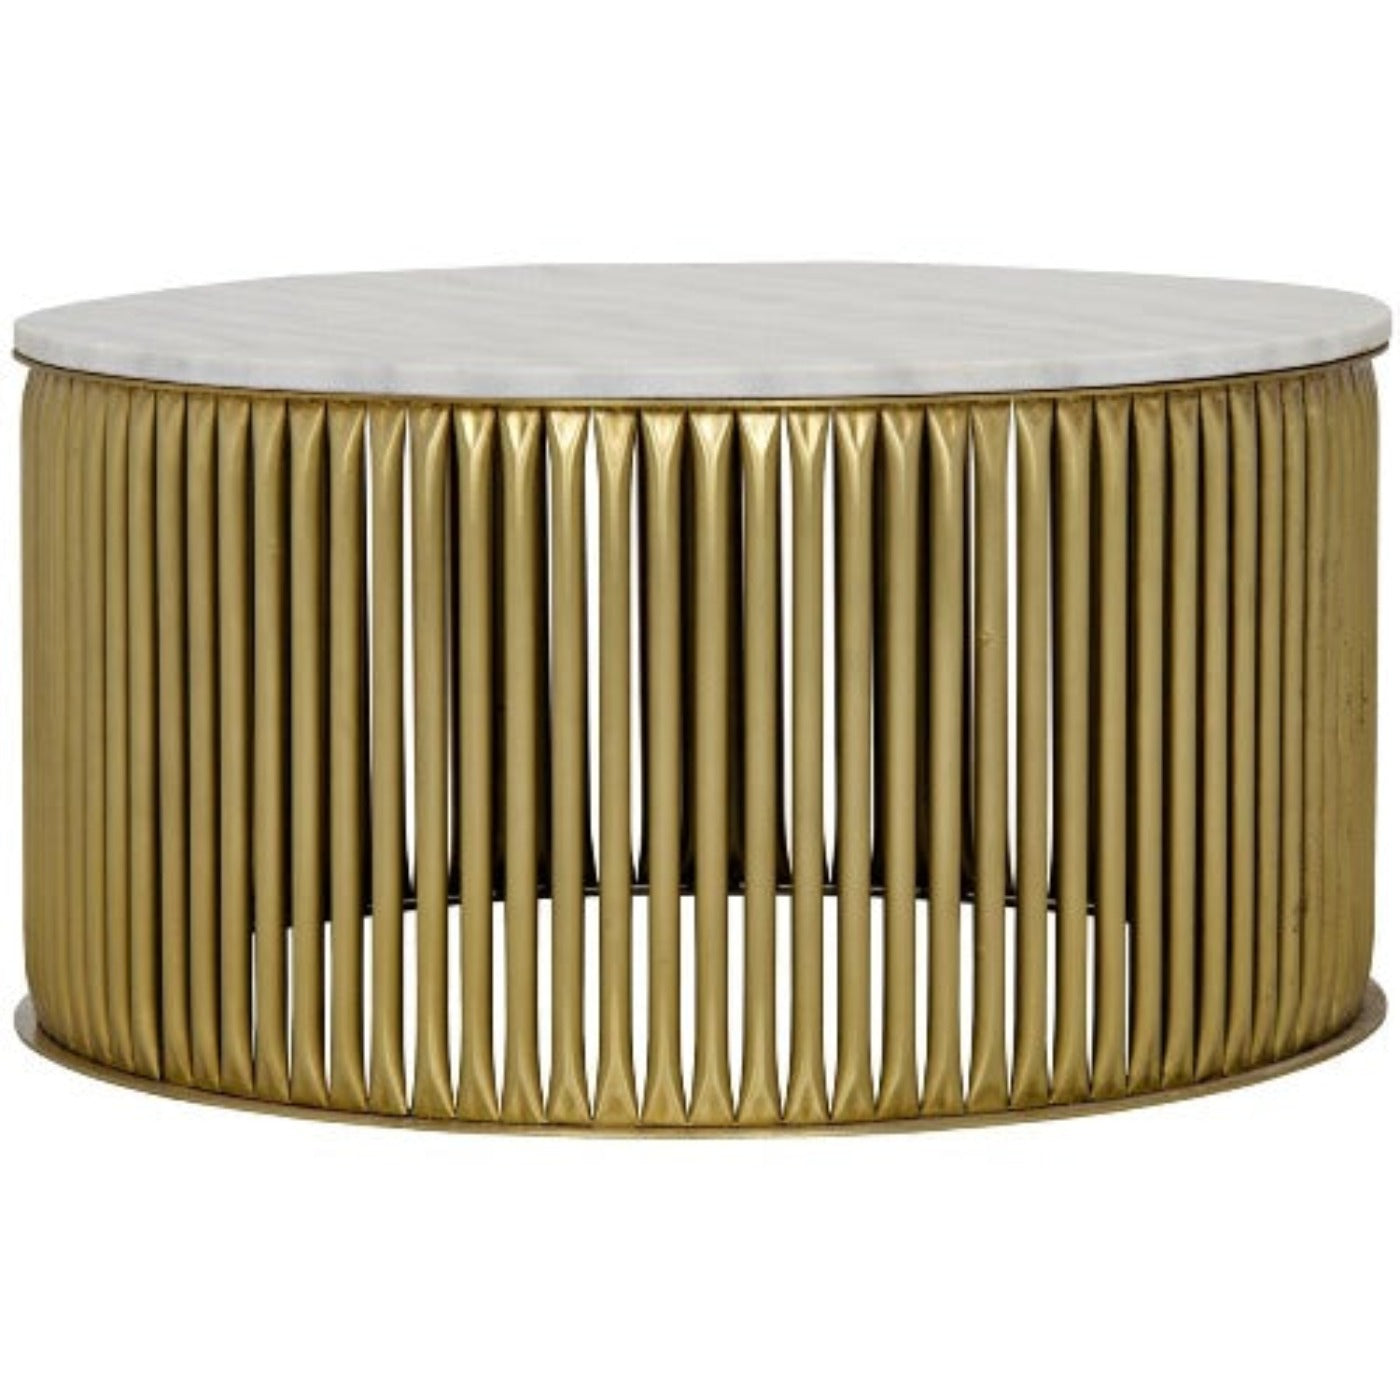 Noir Furniture Lenox Coffee Table, Antique Brass, Metal and Stone-Noir Furniture-Blue Hand Home